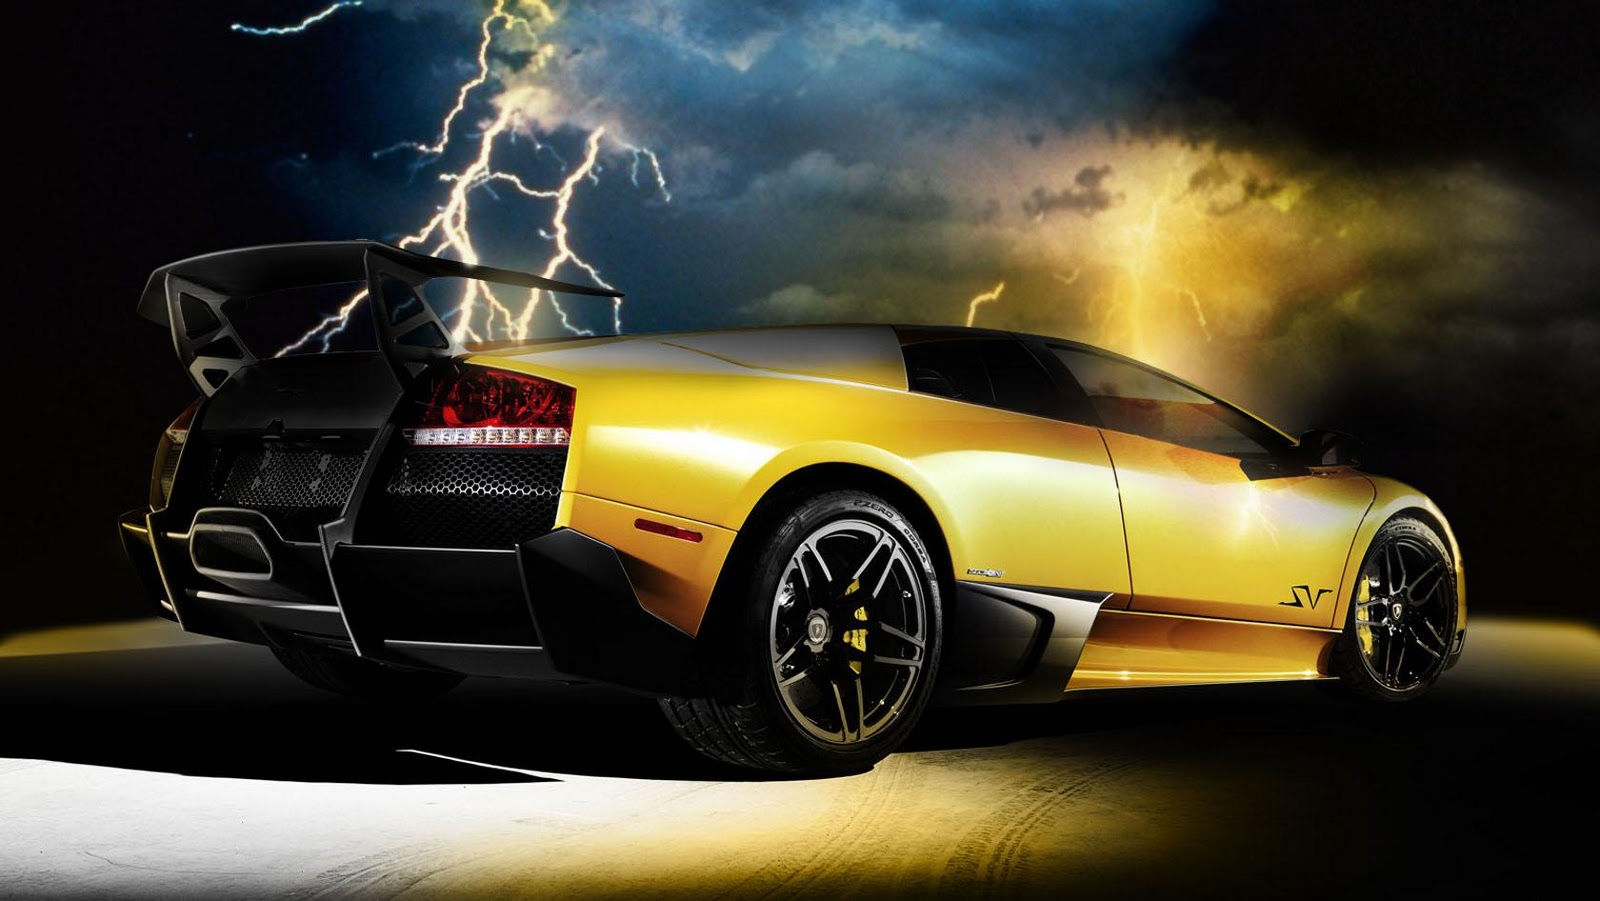 1600x901 Lamborghini Murcielago Wallpaper | Cool Car Wallpapers